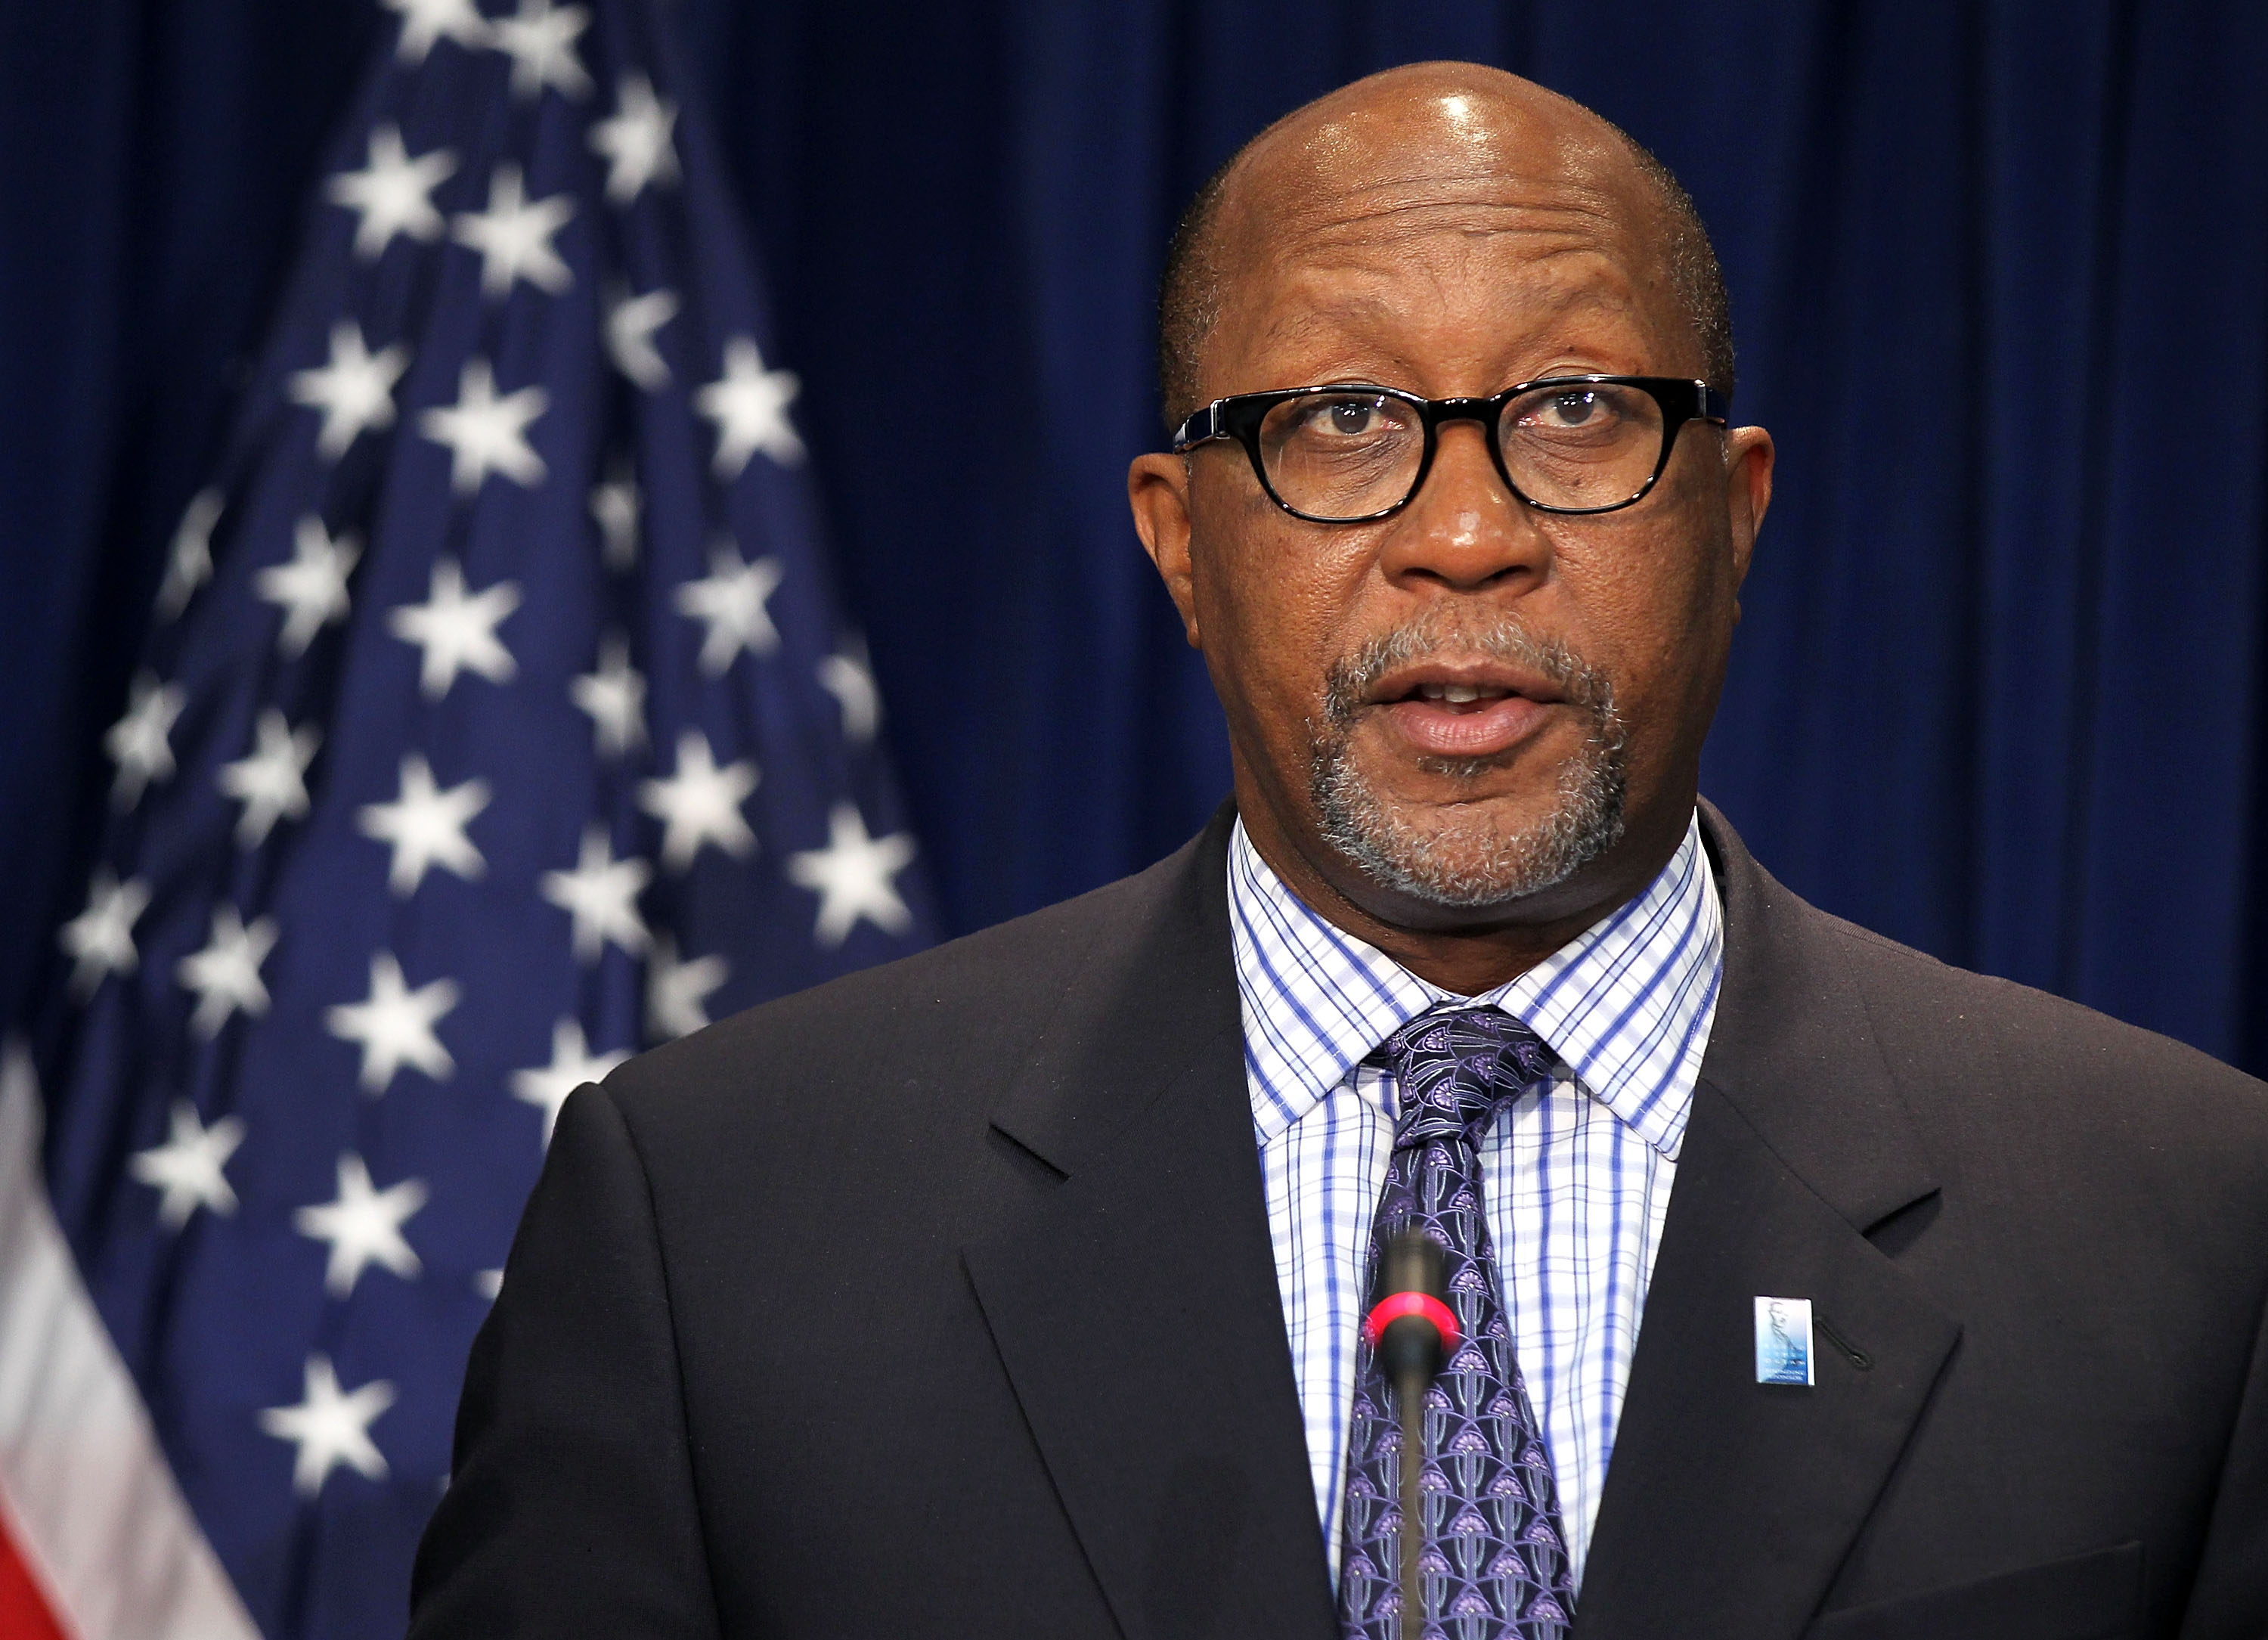 U.S. Trade Representative Ron Kirk speaks as he announces a trade enforcement action against China in Washington, DC., Sept. 20, 2011.